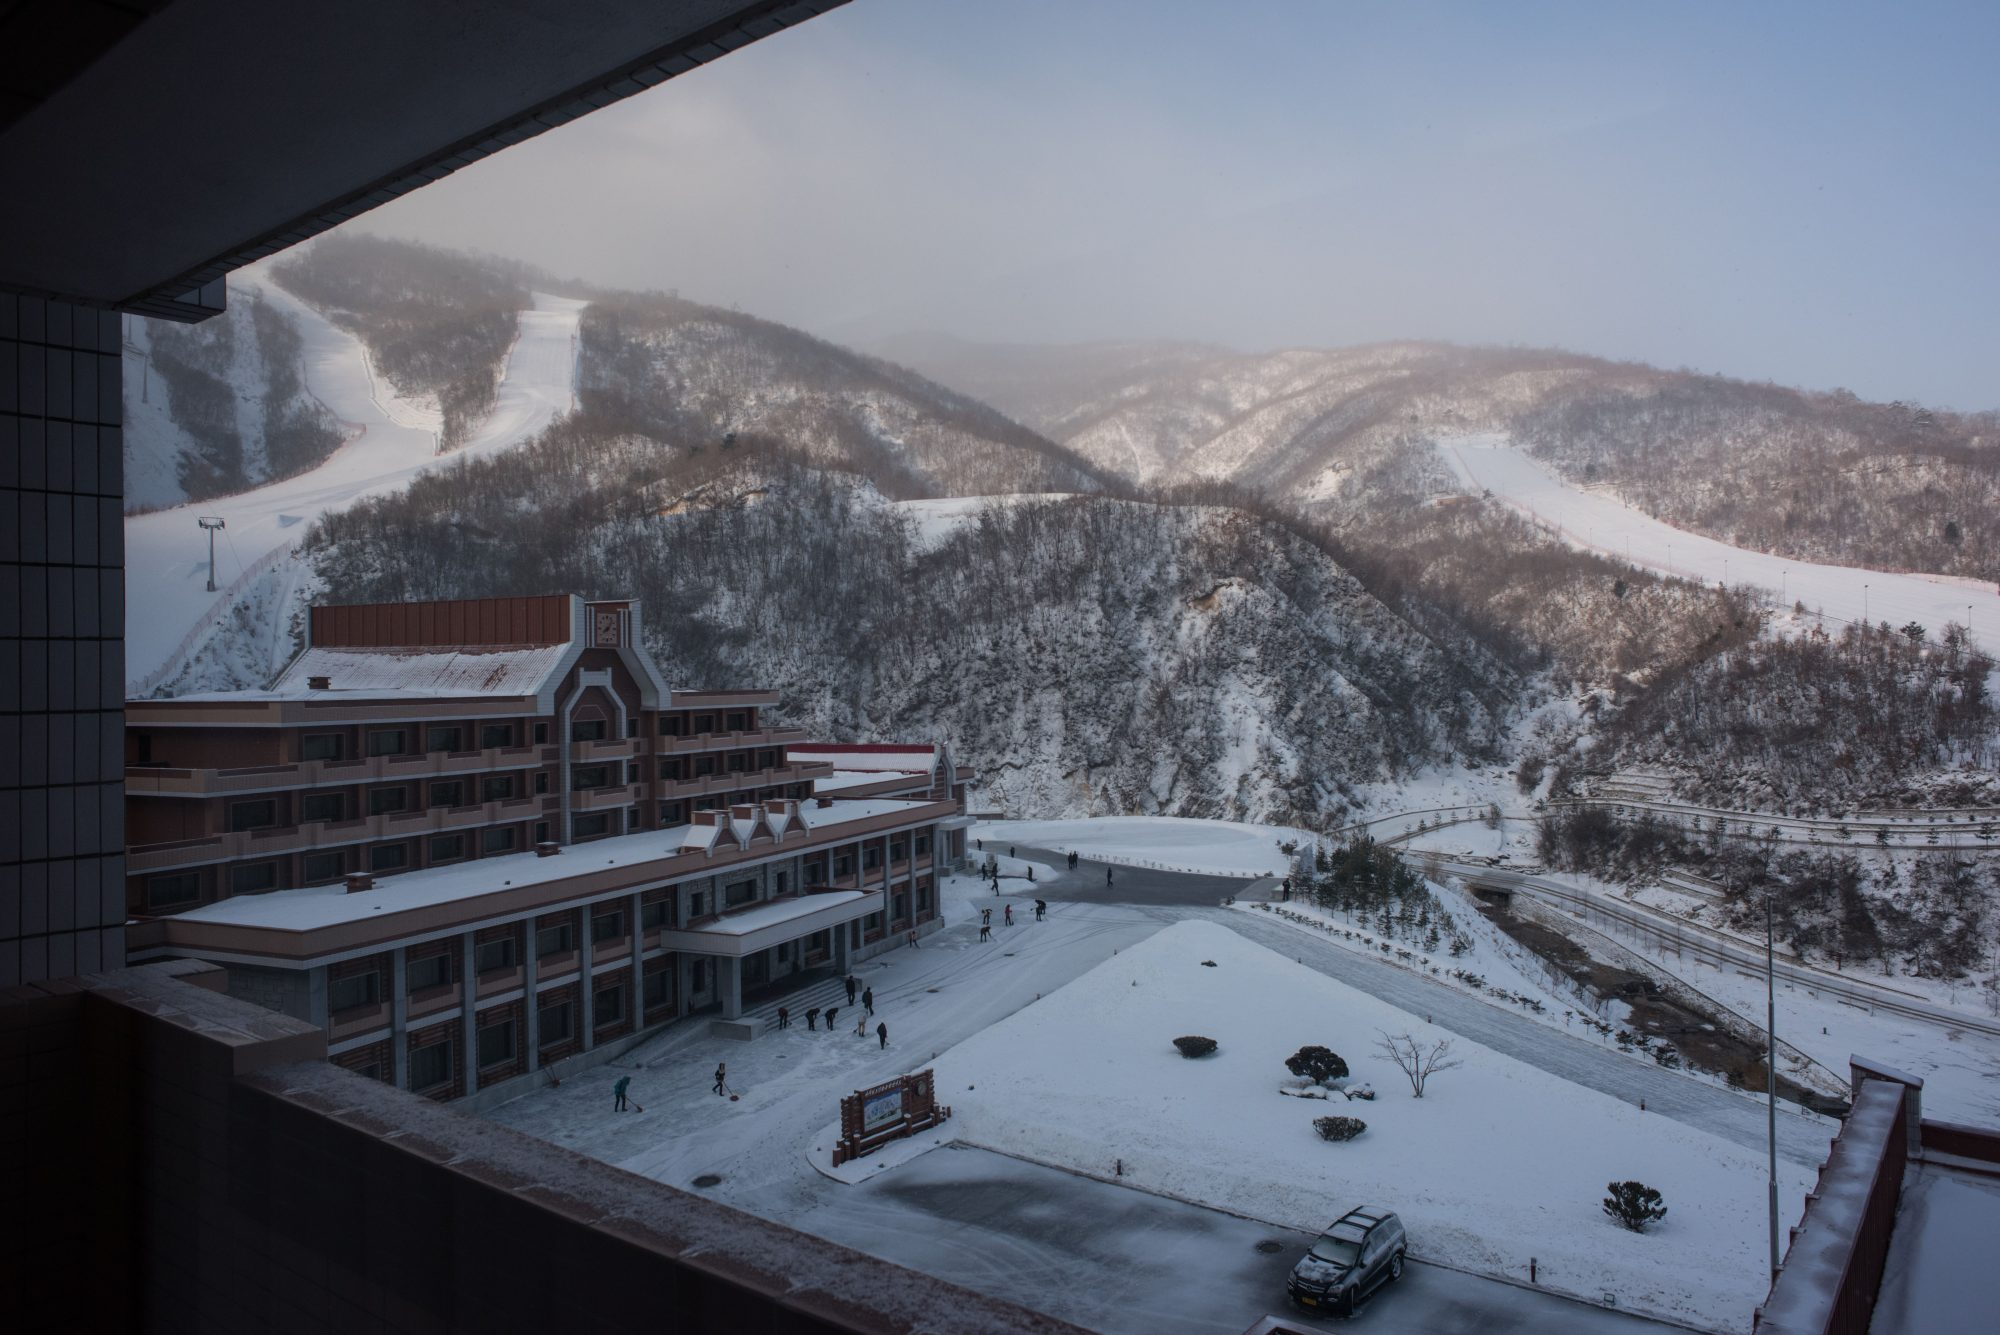 NKOREA-TOURISM-LEISURE-SKI-DIPLOMACY